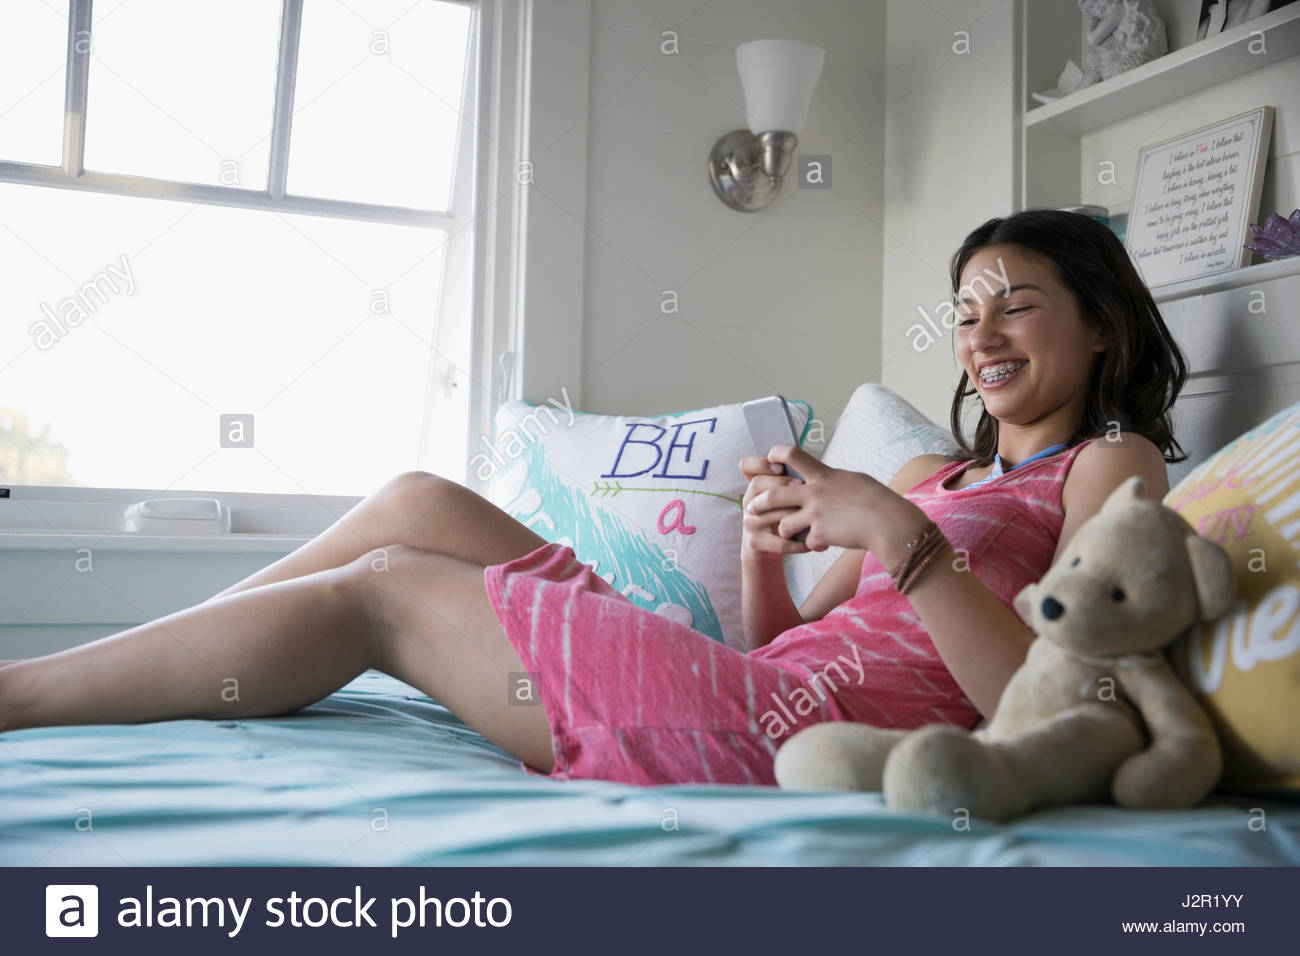 Smiling teenage girl with braces texting with smart phone on bed - Stock Image